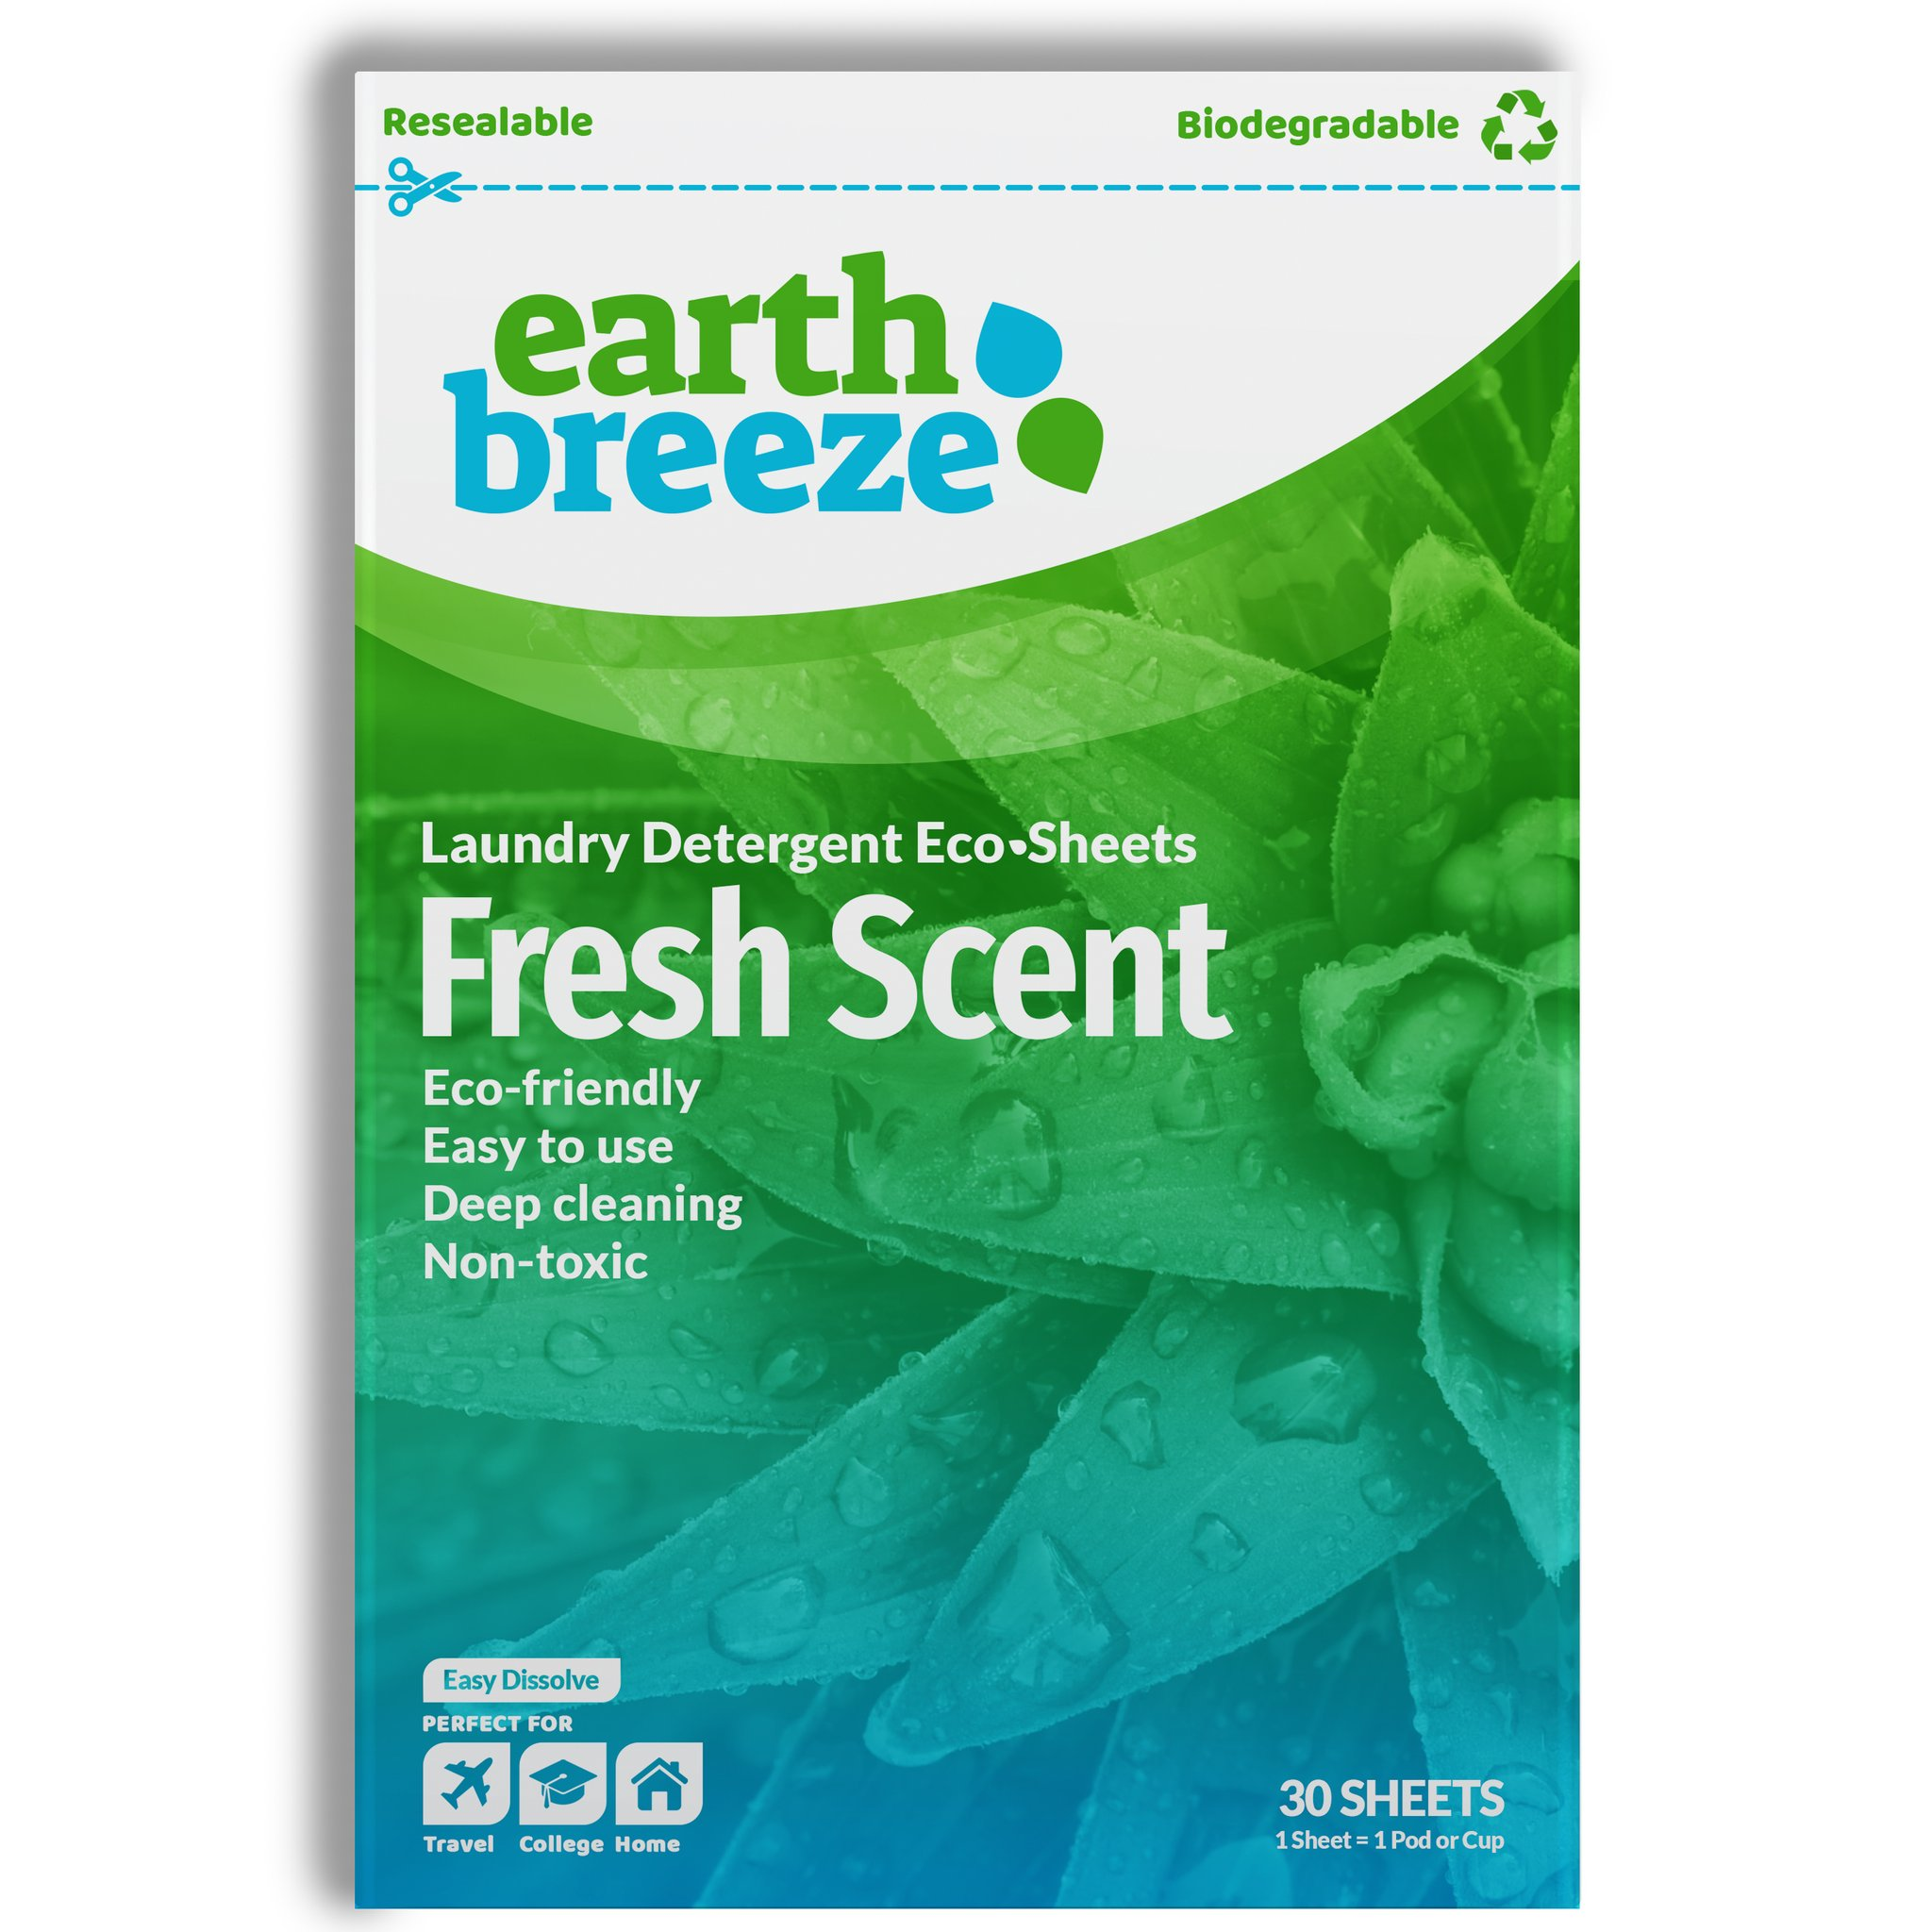 Earth Breeze Laundry Detergent for your Eco-Conscious Household